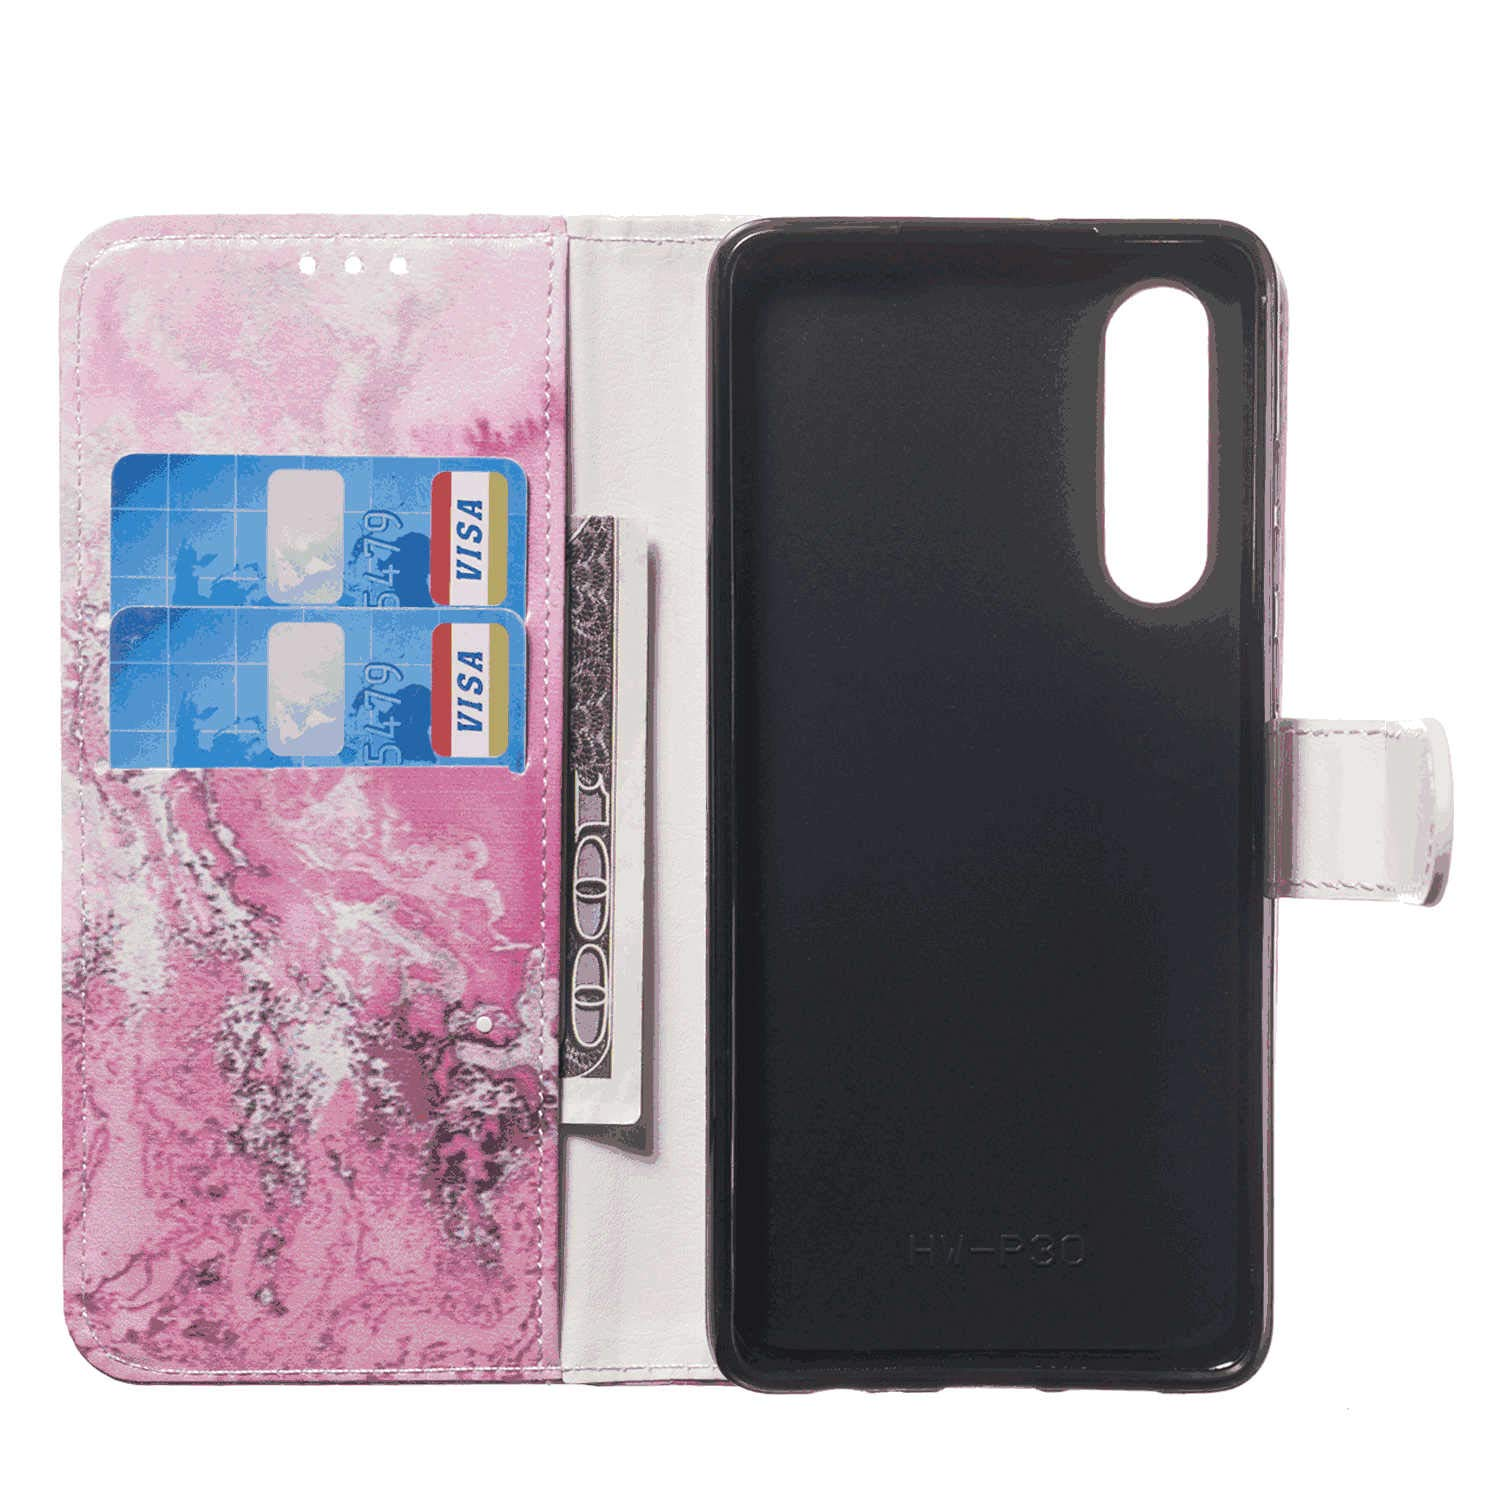 Elegant fashion1 Wallet Case for iPhone 11 Pro Max PU Leather Flip Cover Compatible with iPhone 11 Pro Max